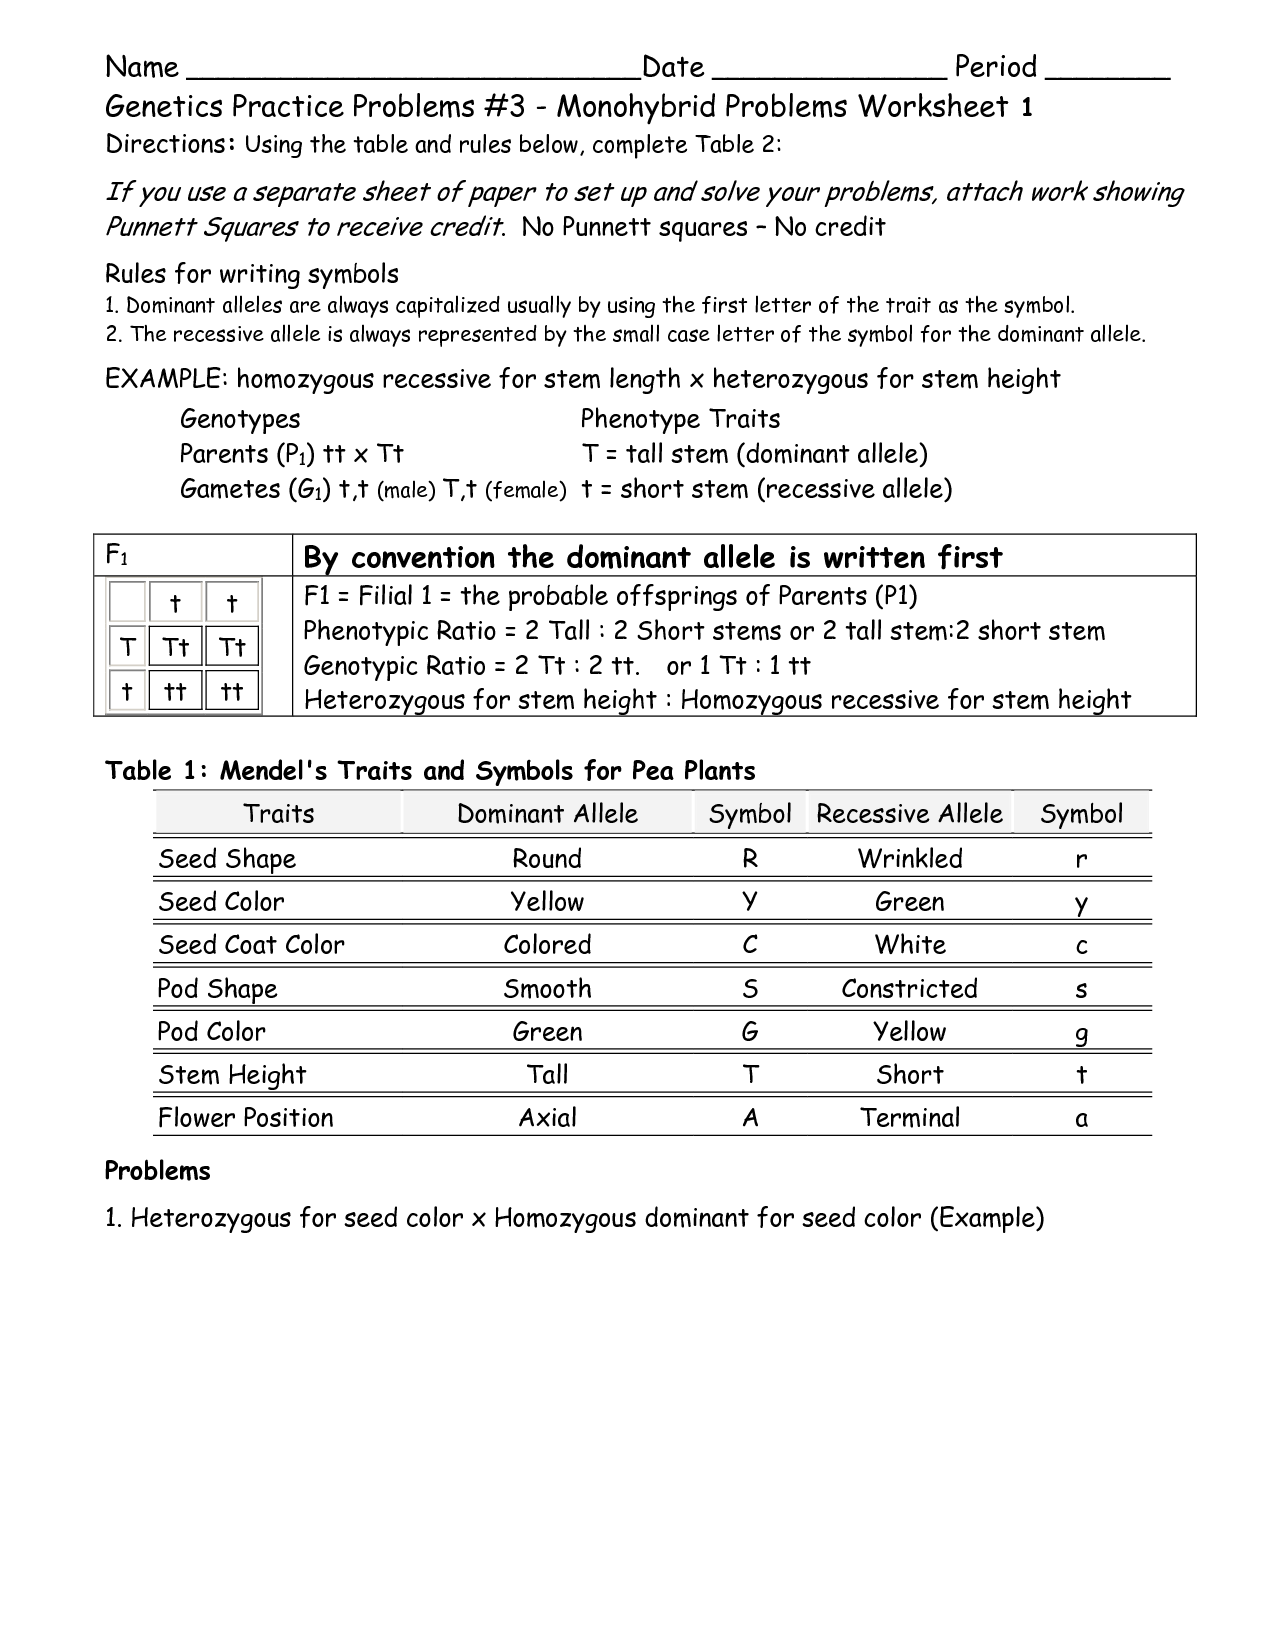 18 Best Images Of Monohybrid Genetics Problems Worksheet